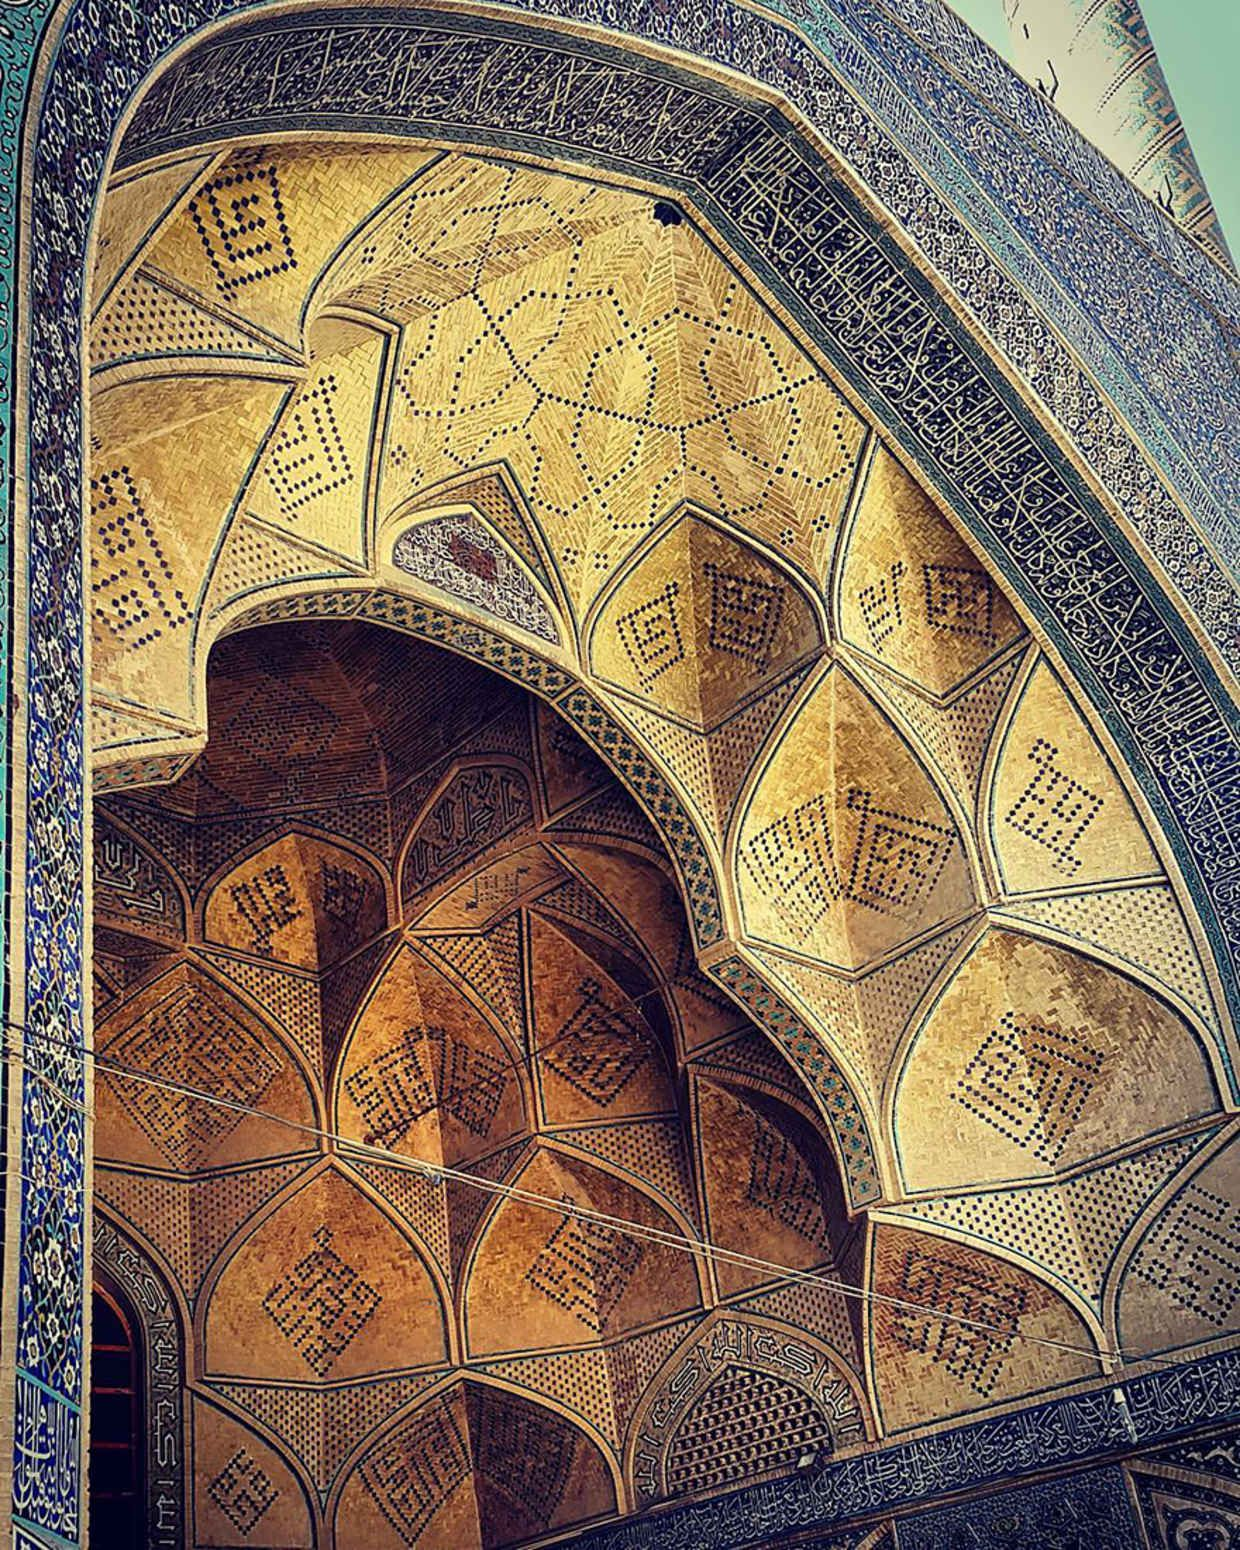 The Mesmerising Architecture Of Iranian Mosques Mosques Iranian - The mesmerising architecture of iranian mosques